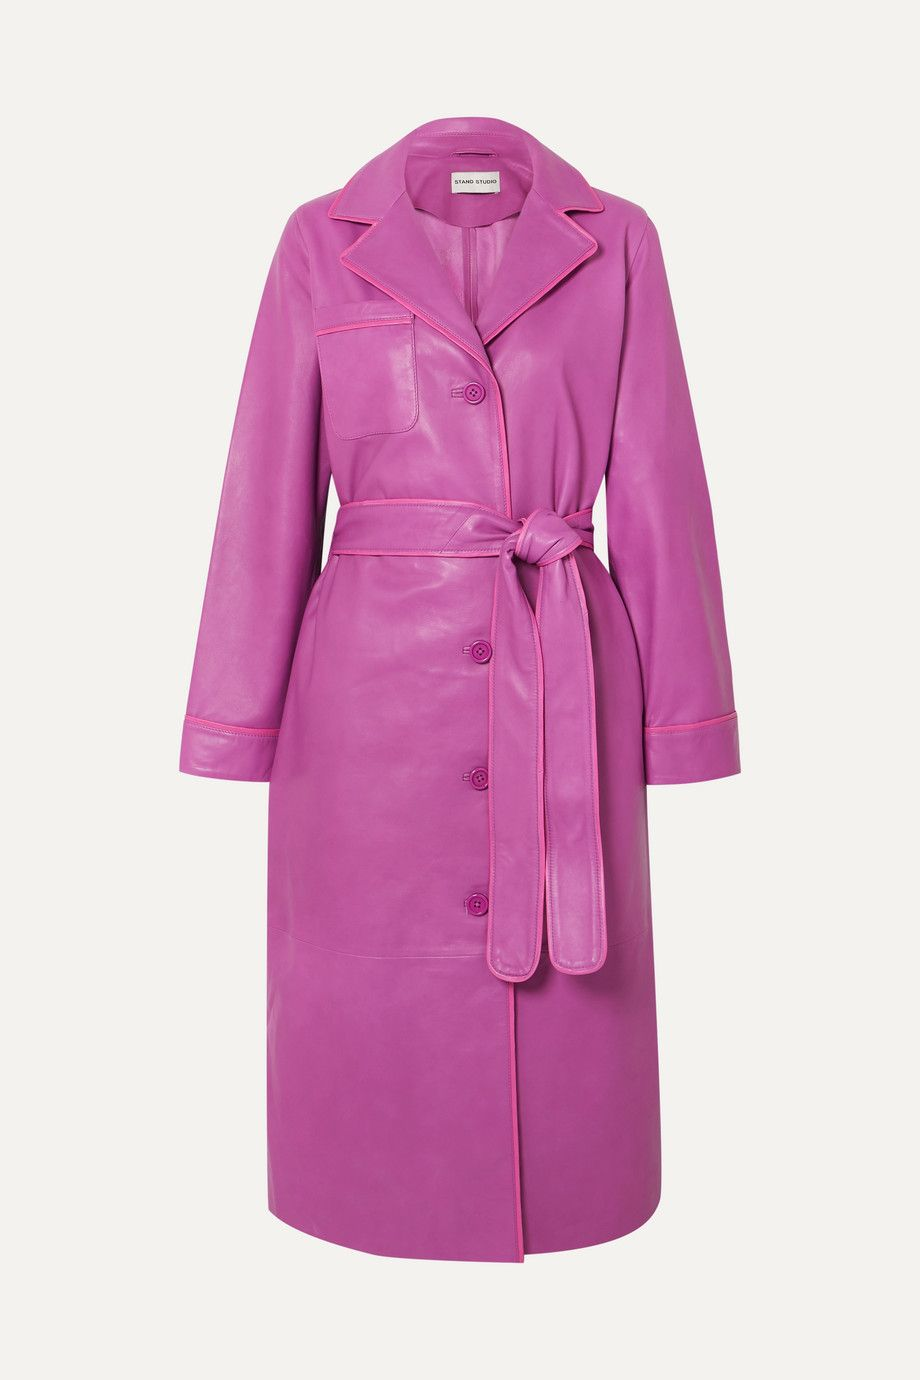 stand-studio-pink-leather-trench-coat